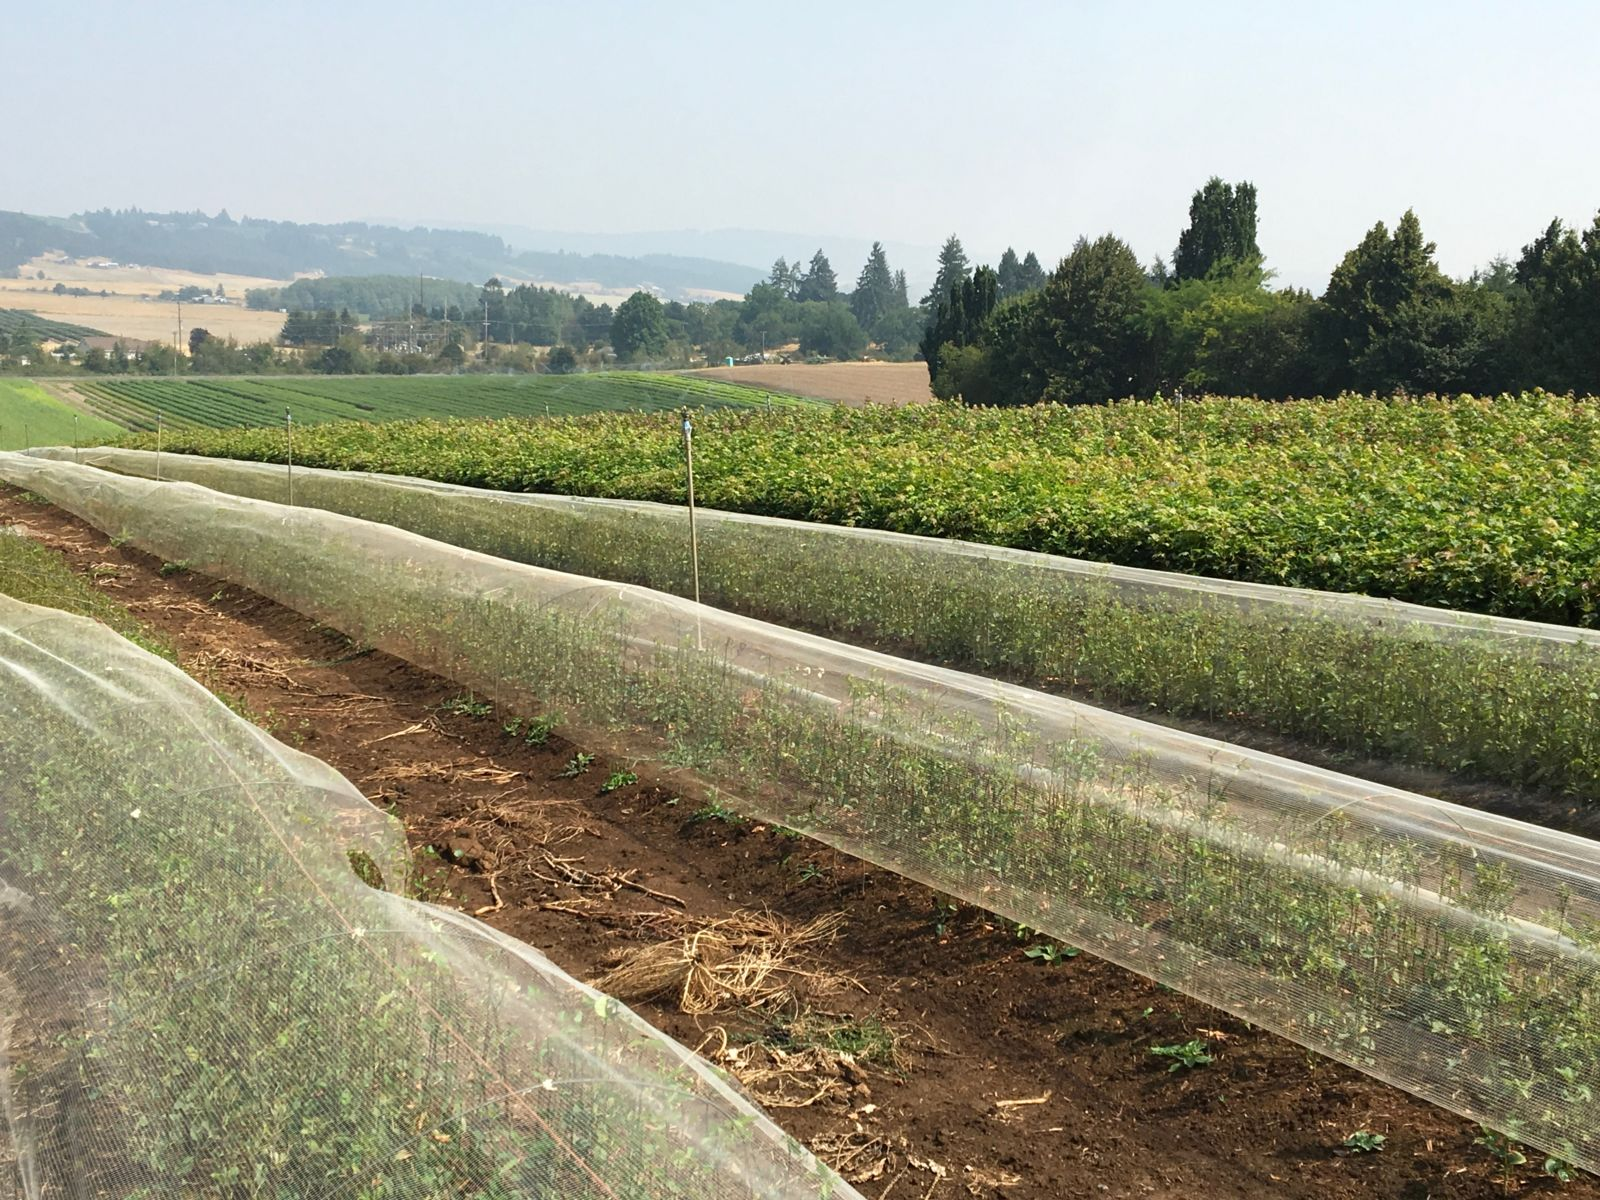 A field nursery in Oregon